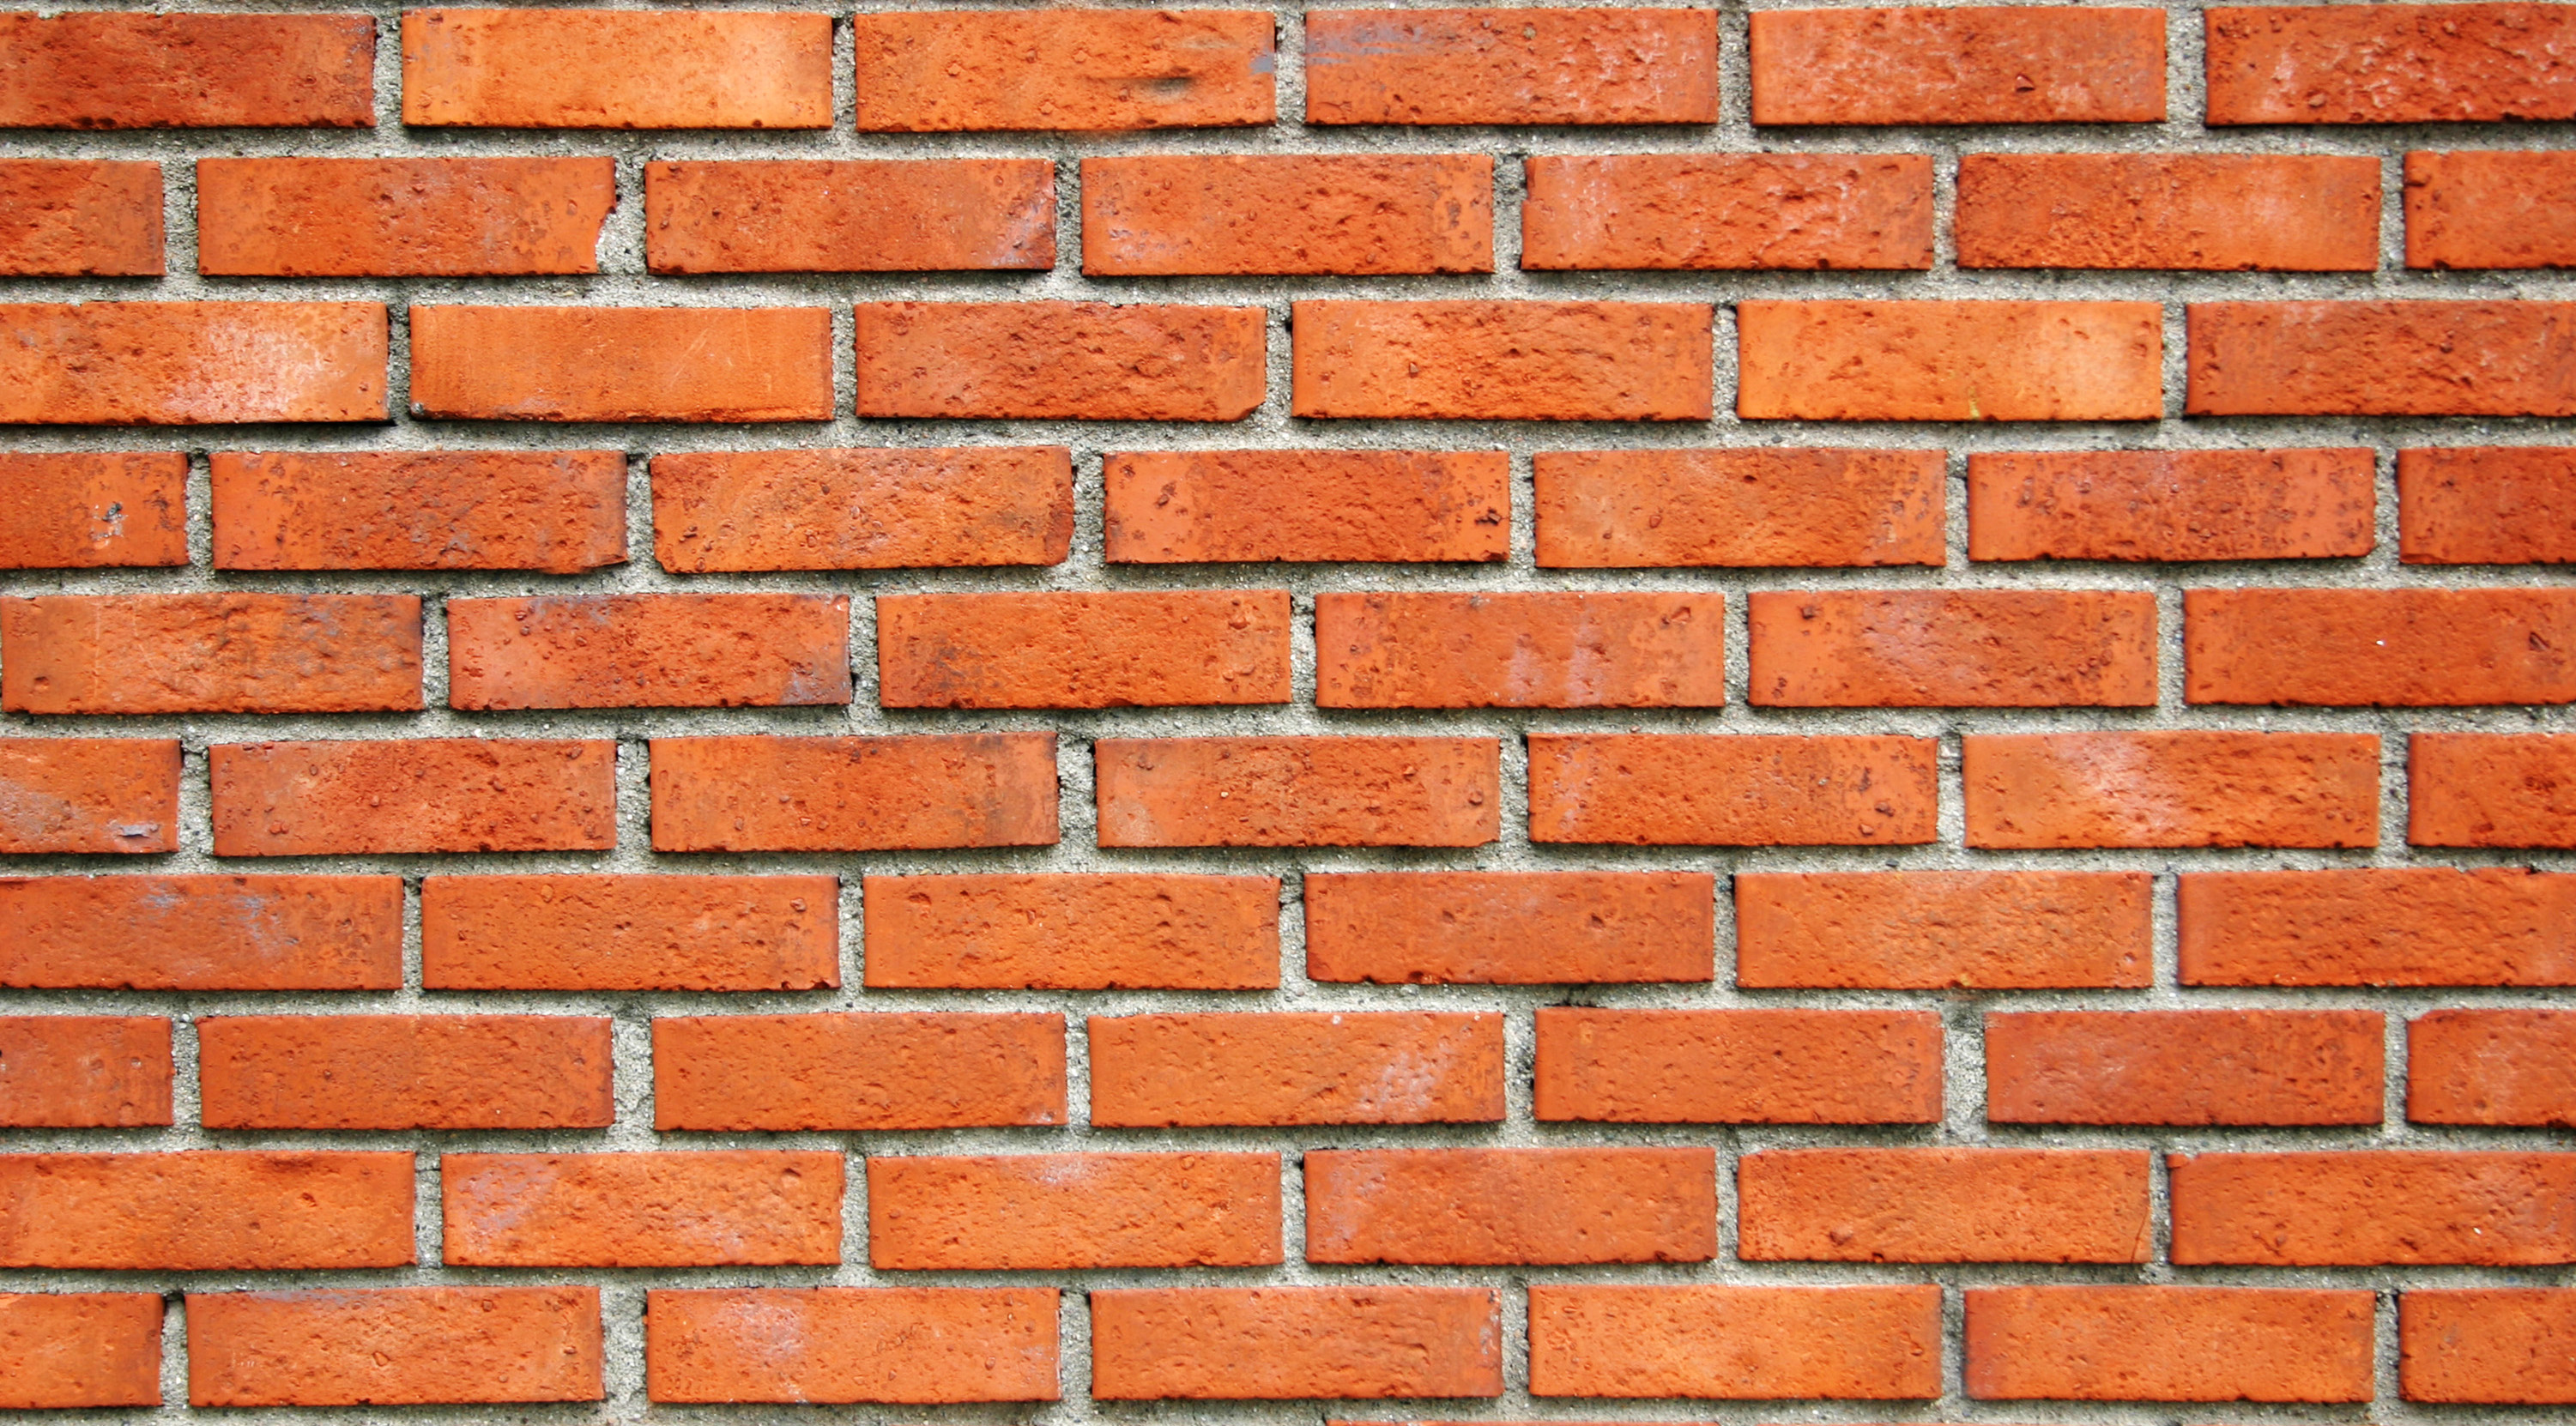 Brick Wall Design 16 Brick Wall Texture Wallpaper Psd Images Grunge Brick